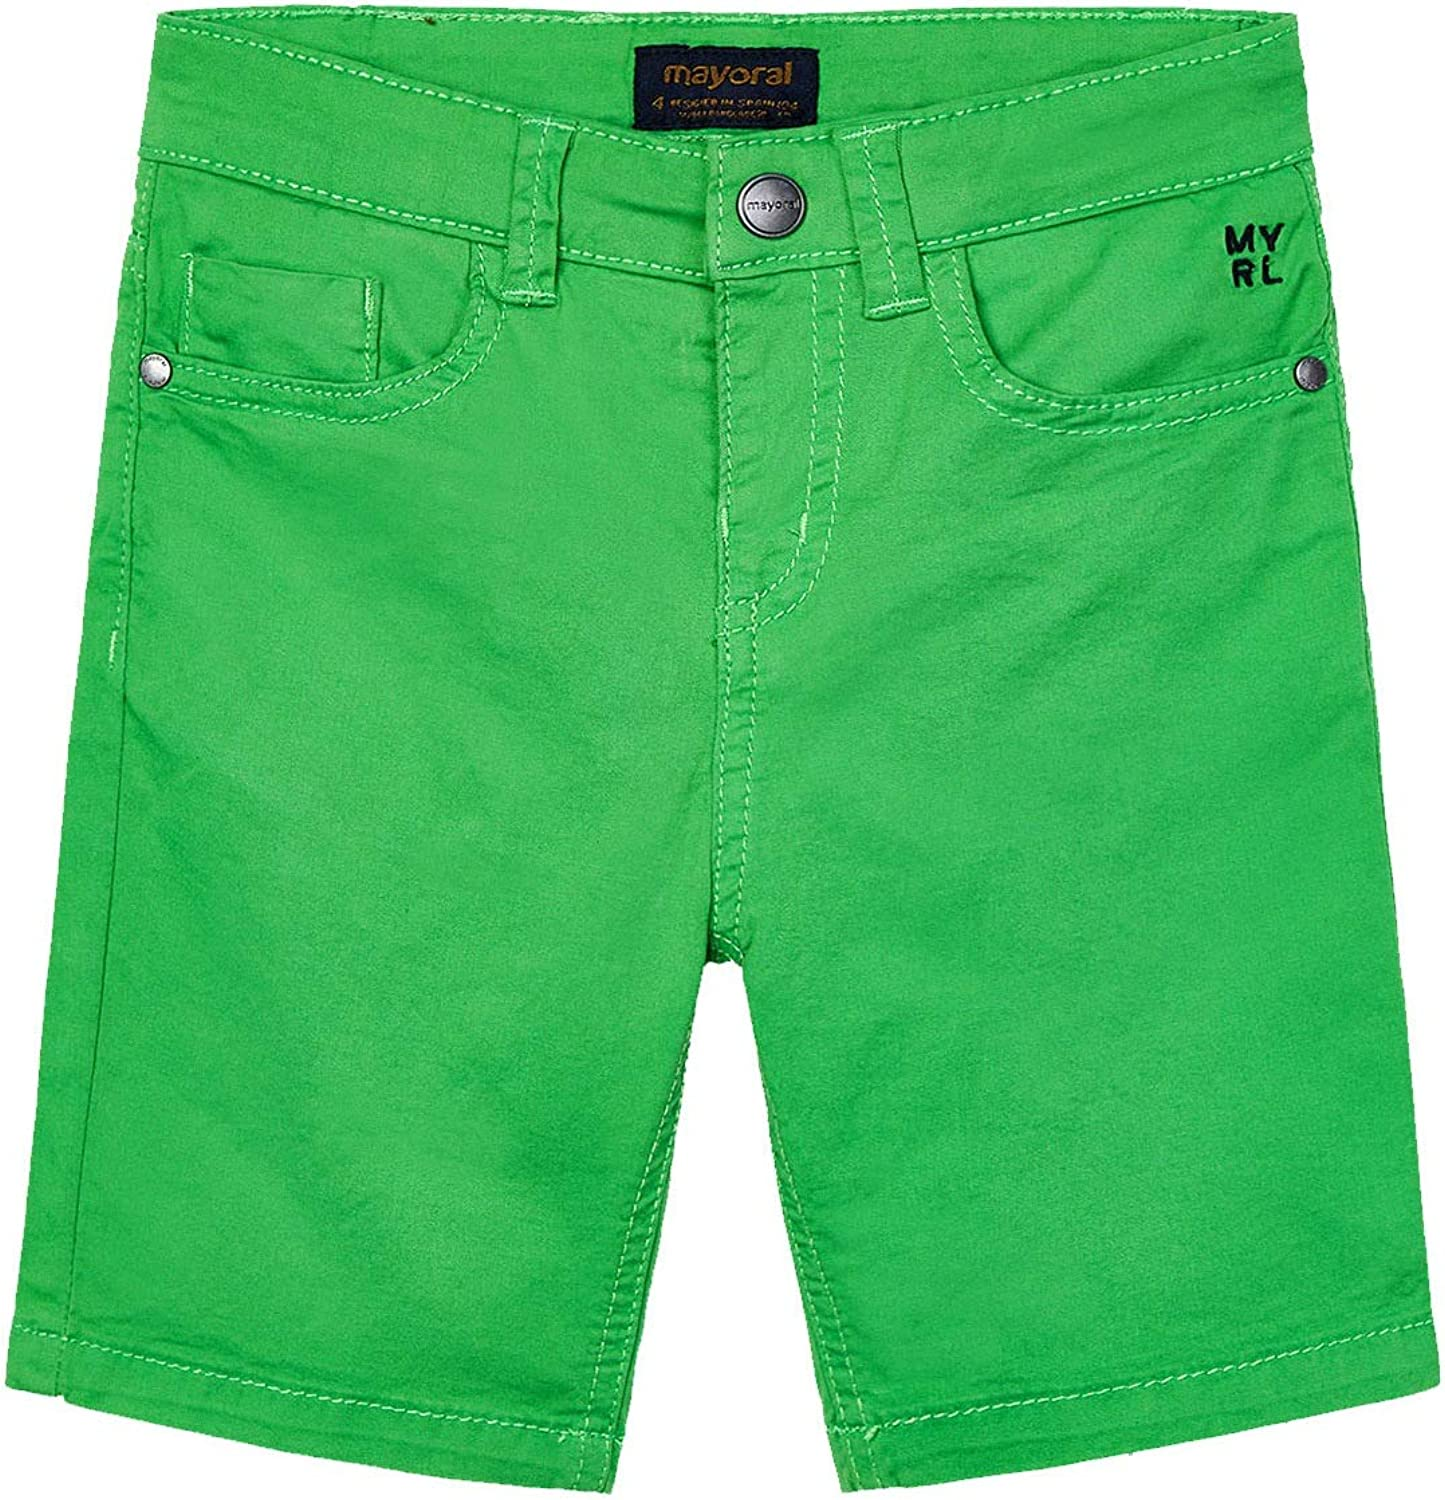 Mayoral - Basic 5 Pockets Twill Shorts Matcha 0204 Boys Department store for Spring new work